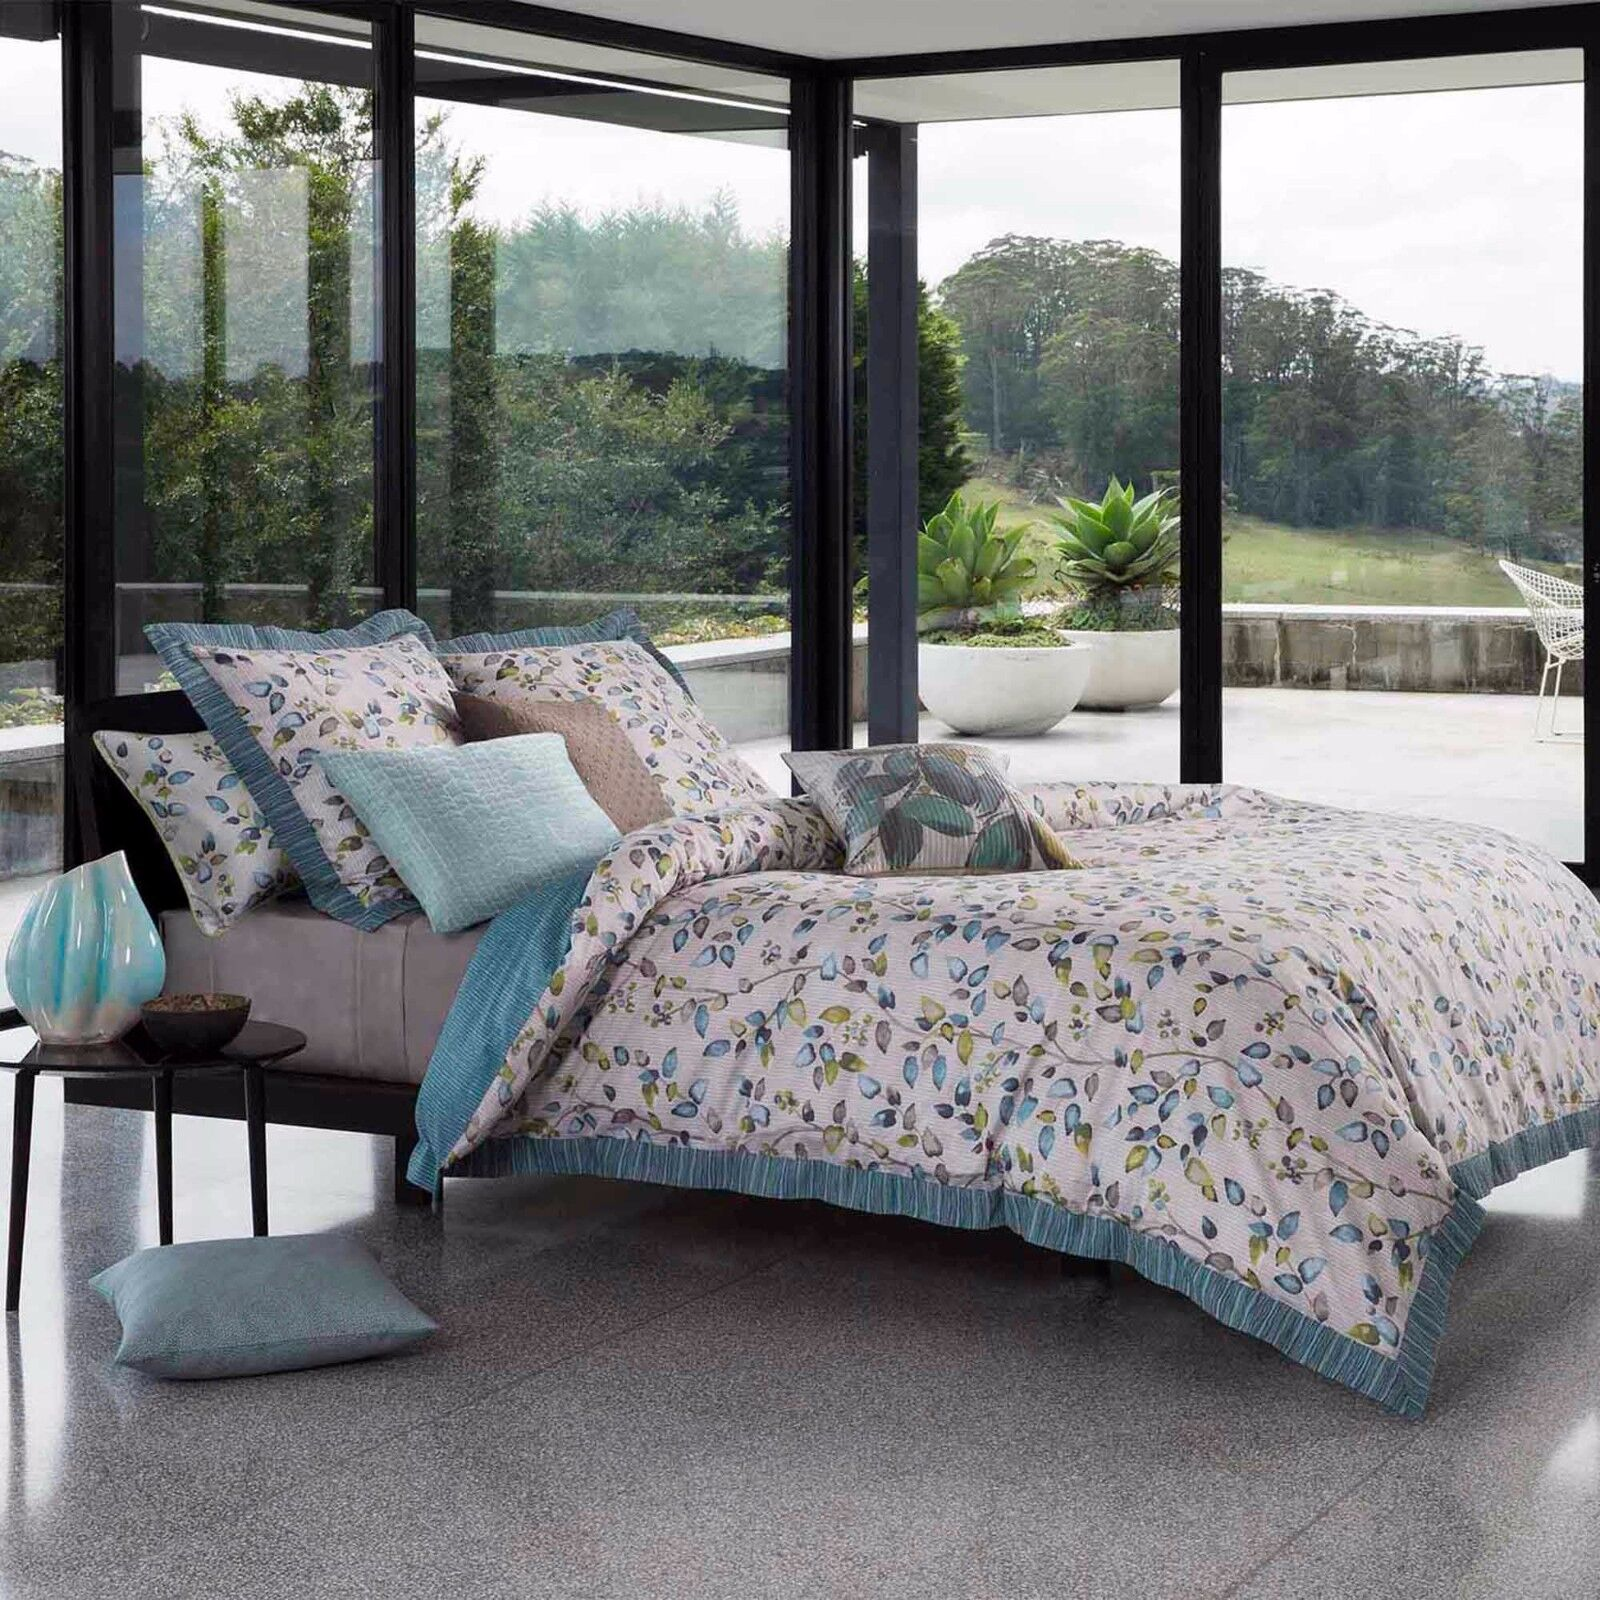 KAS AUSTRALIA ELSBURY 3PC SET, 1 QUEEN DUVET COVER, 2 STANDARD SHAMS SEAFOAM